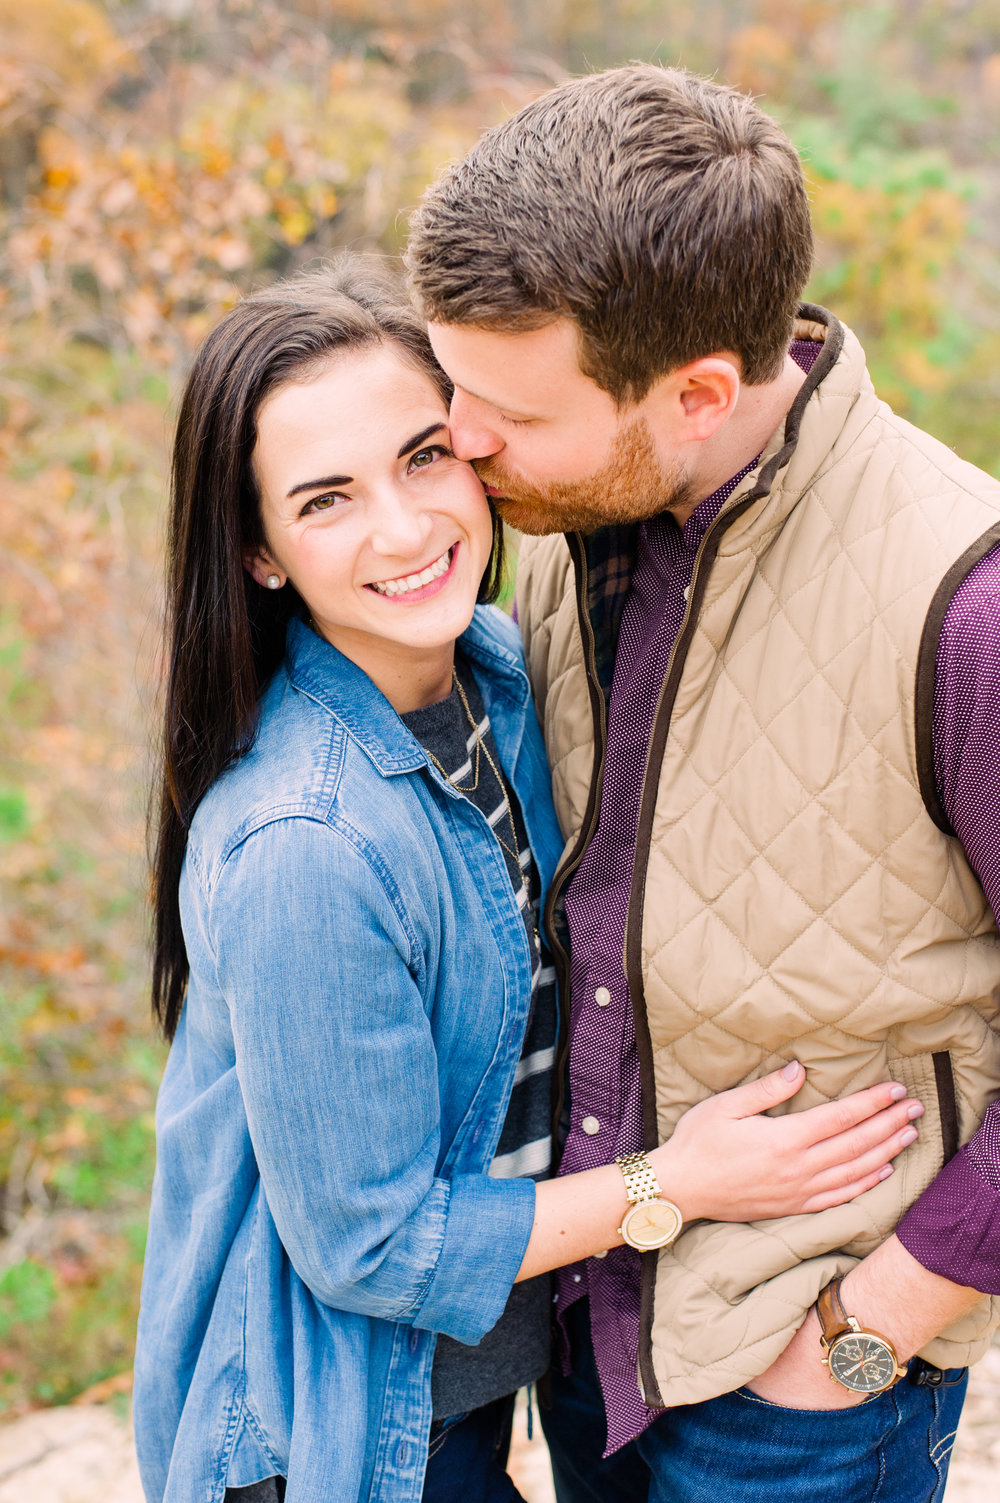 Red River Gorge Engagement Session Photos-4.JPG